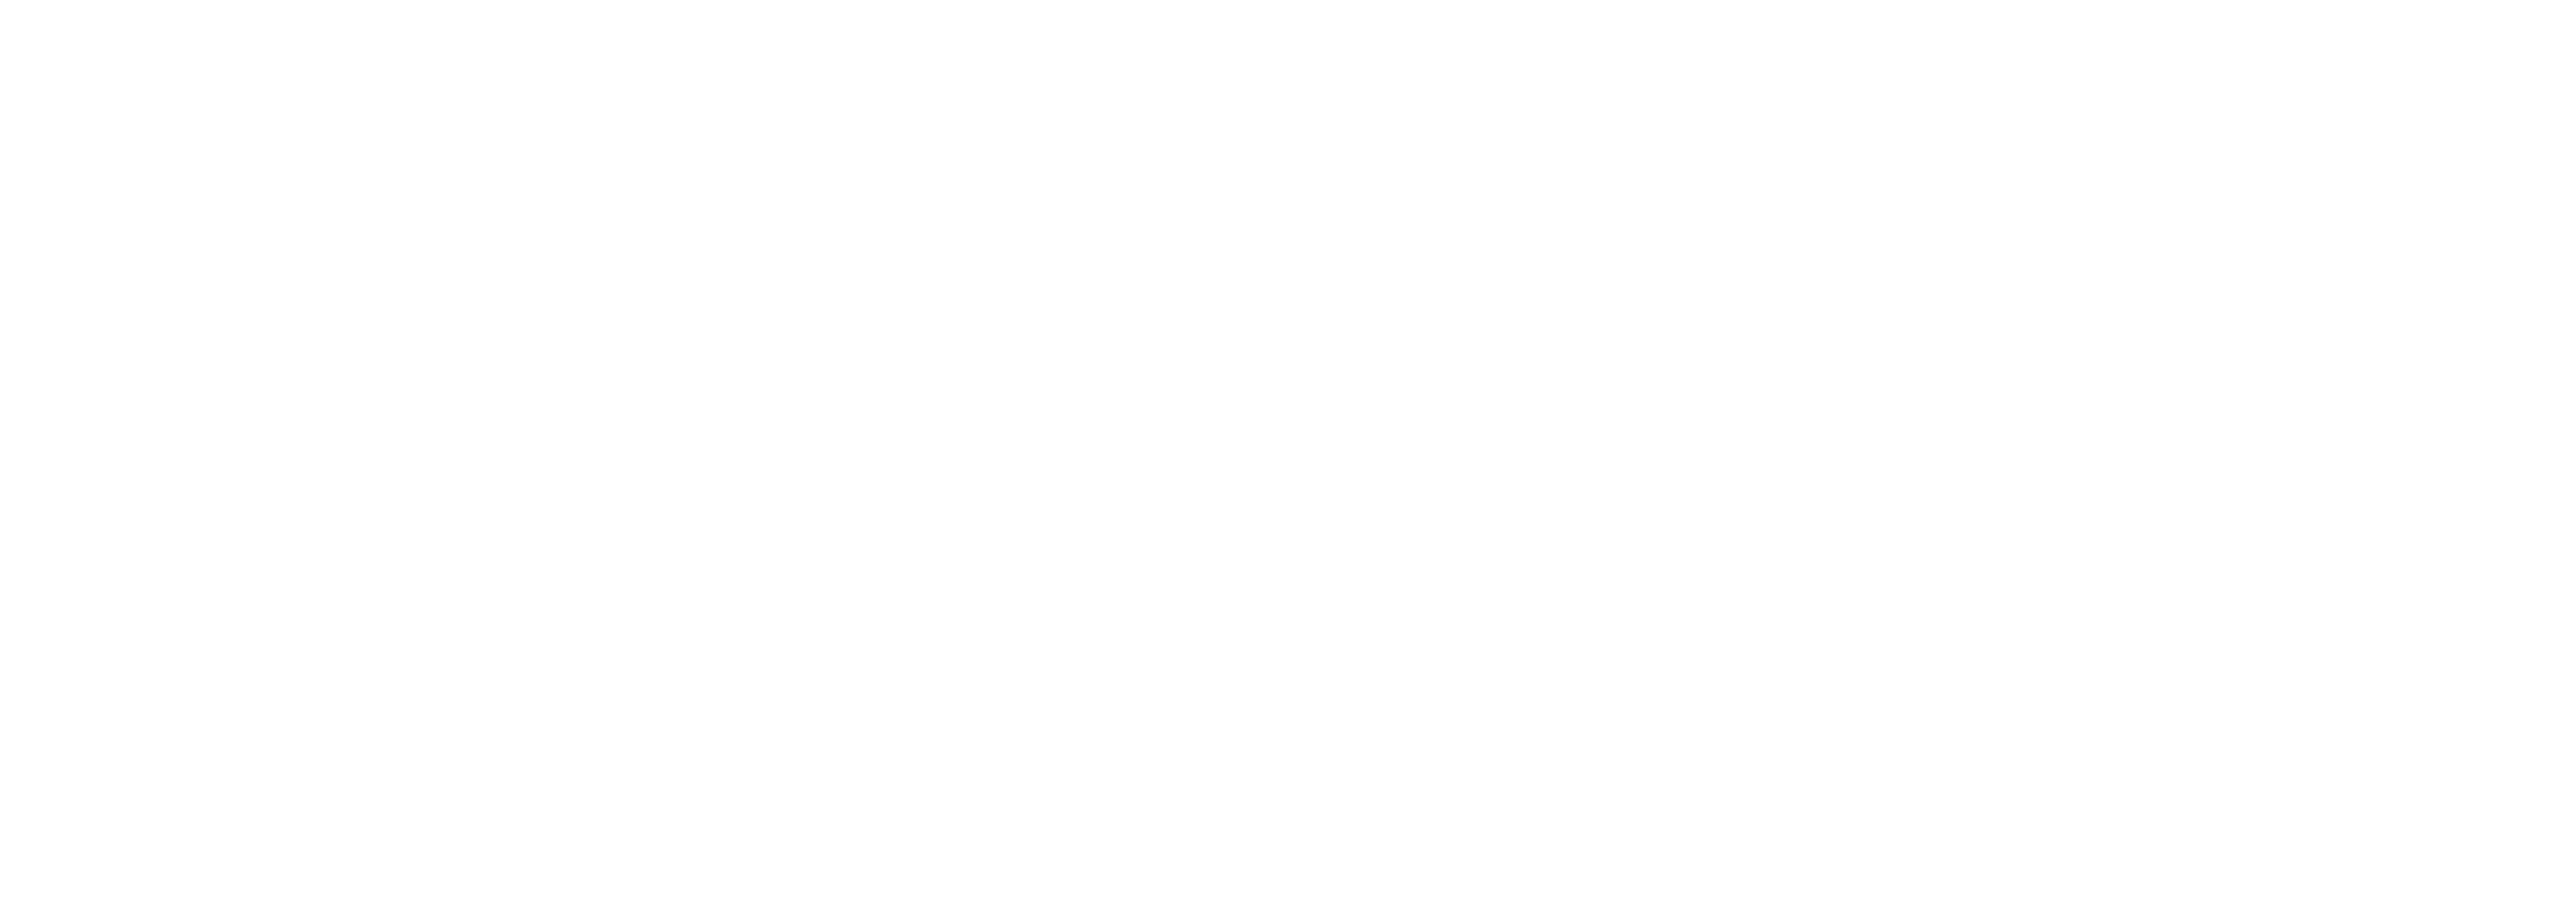 rendezvous-0620-2018-slider2.png